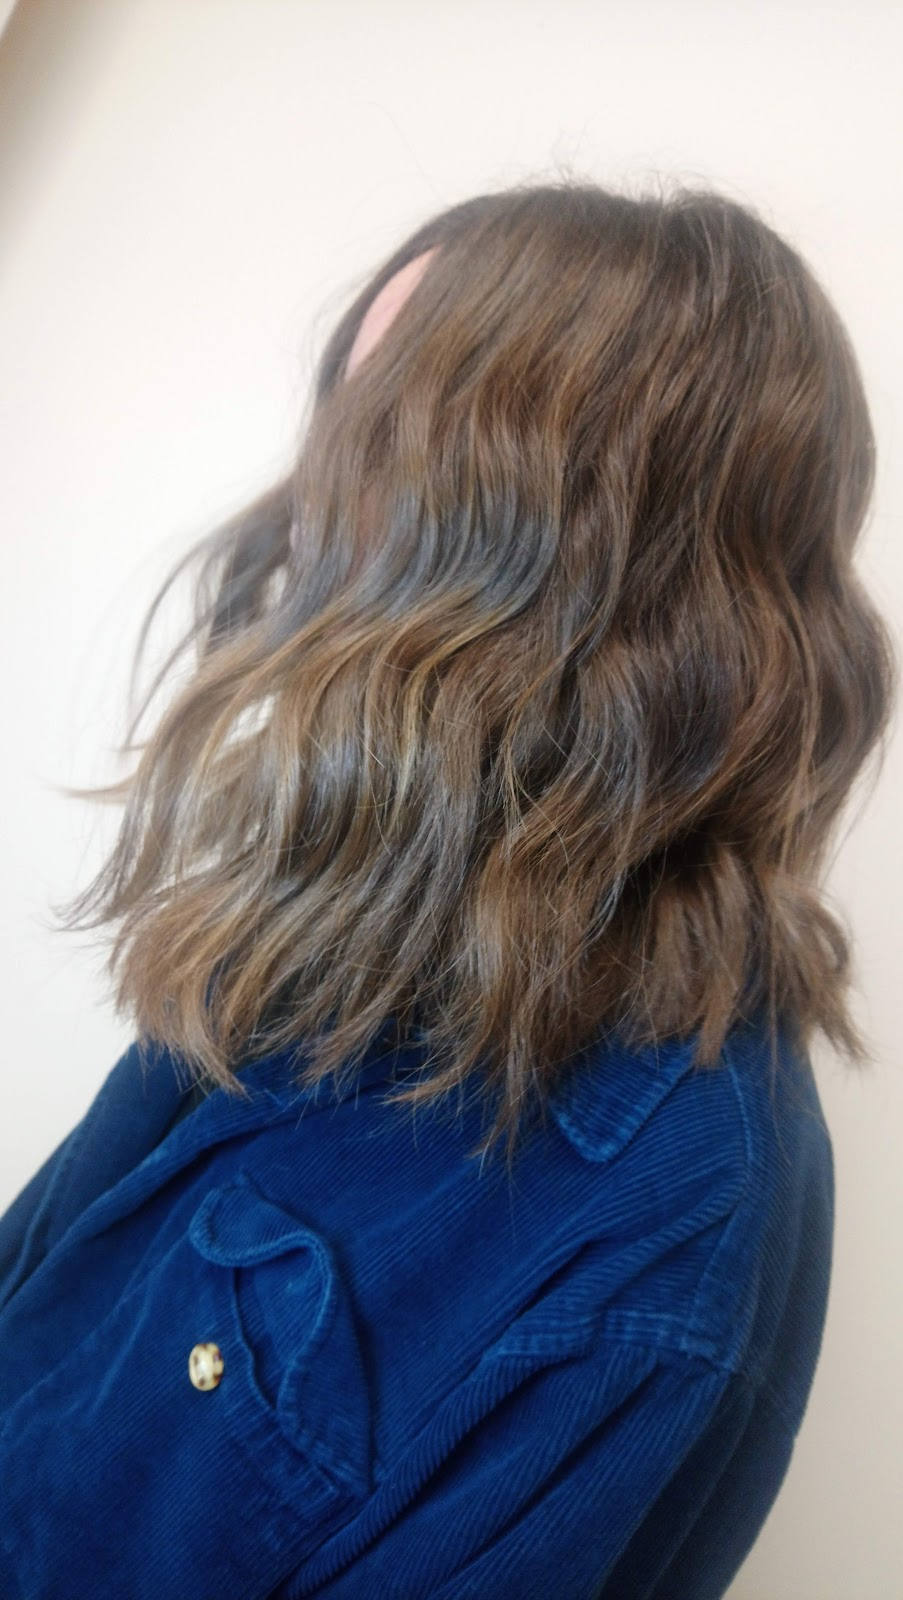 Hair Fantasy | point of interest | 27 Ruth Ave, Brampton, ON L6Z 4R2, Canada | 9058464550 OR +1 905-846-4550